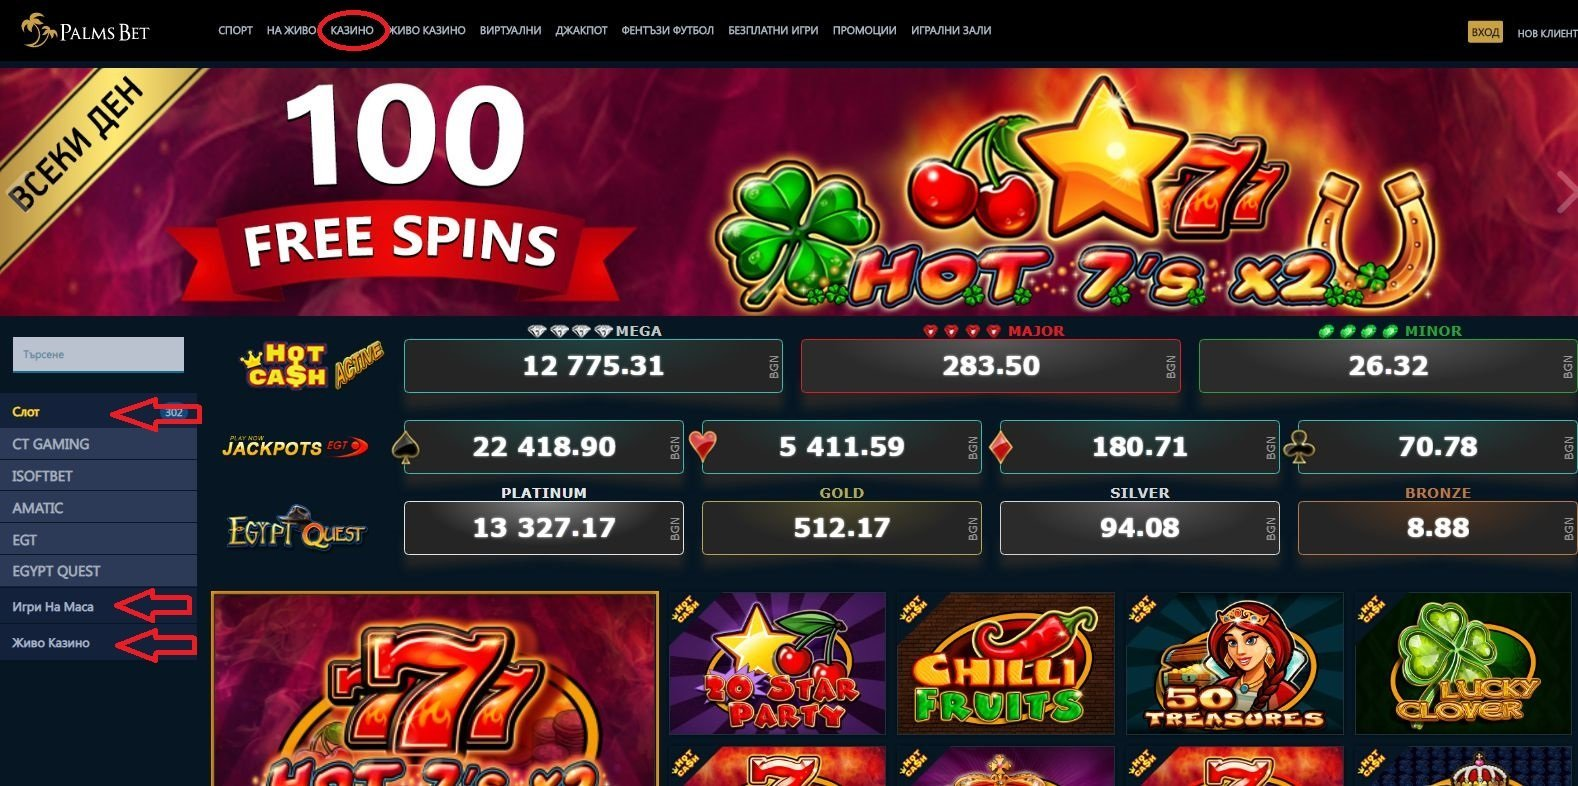 palms-bet-casino-home